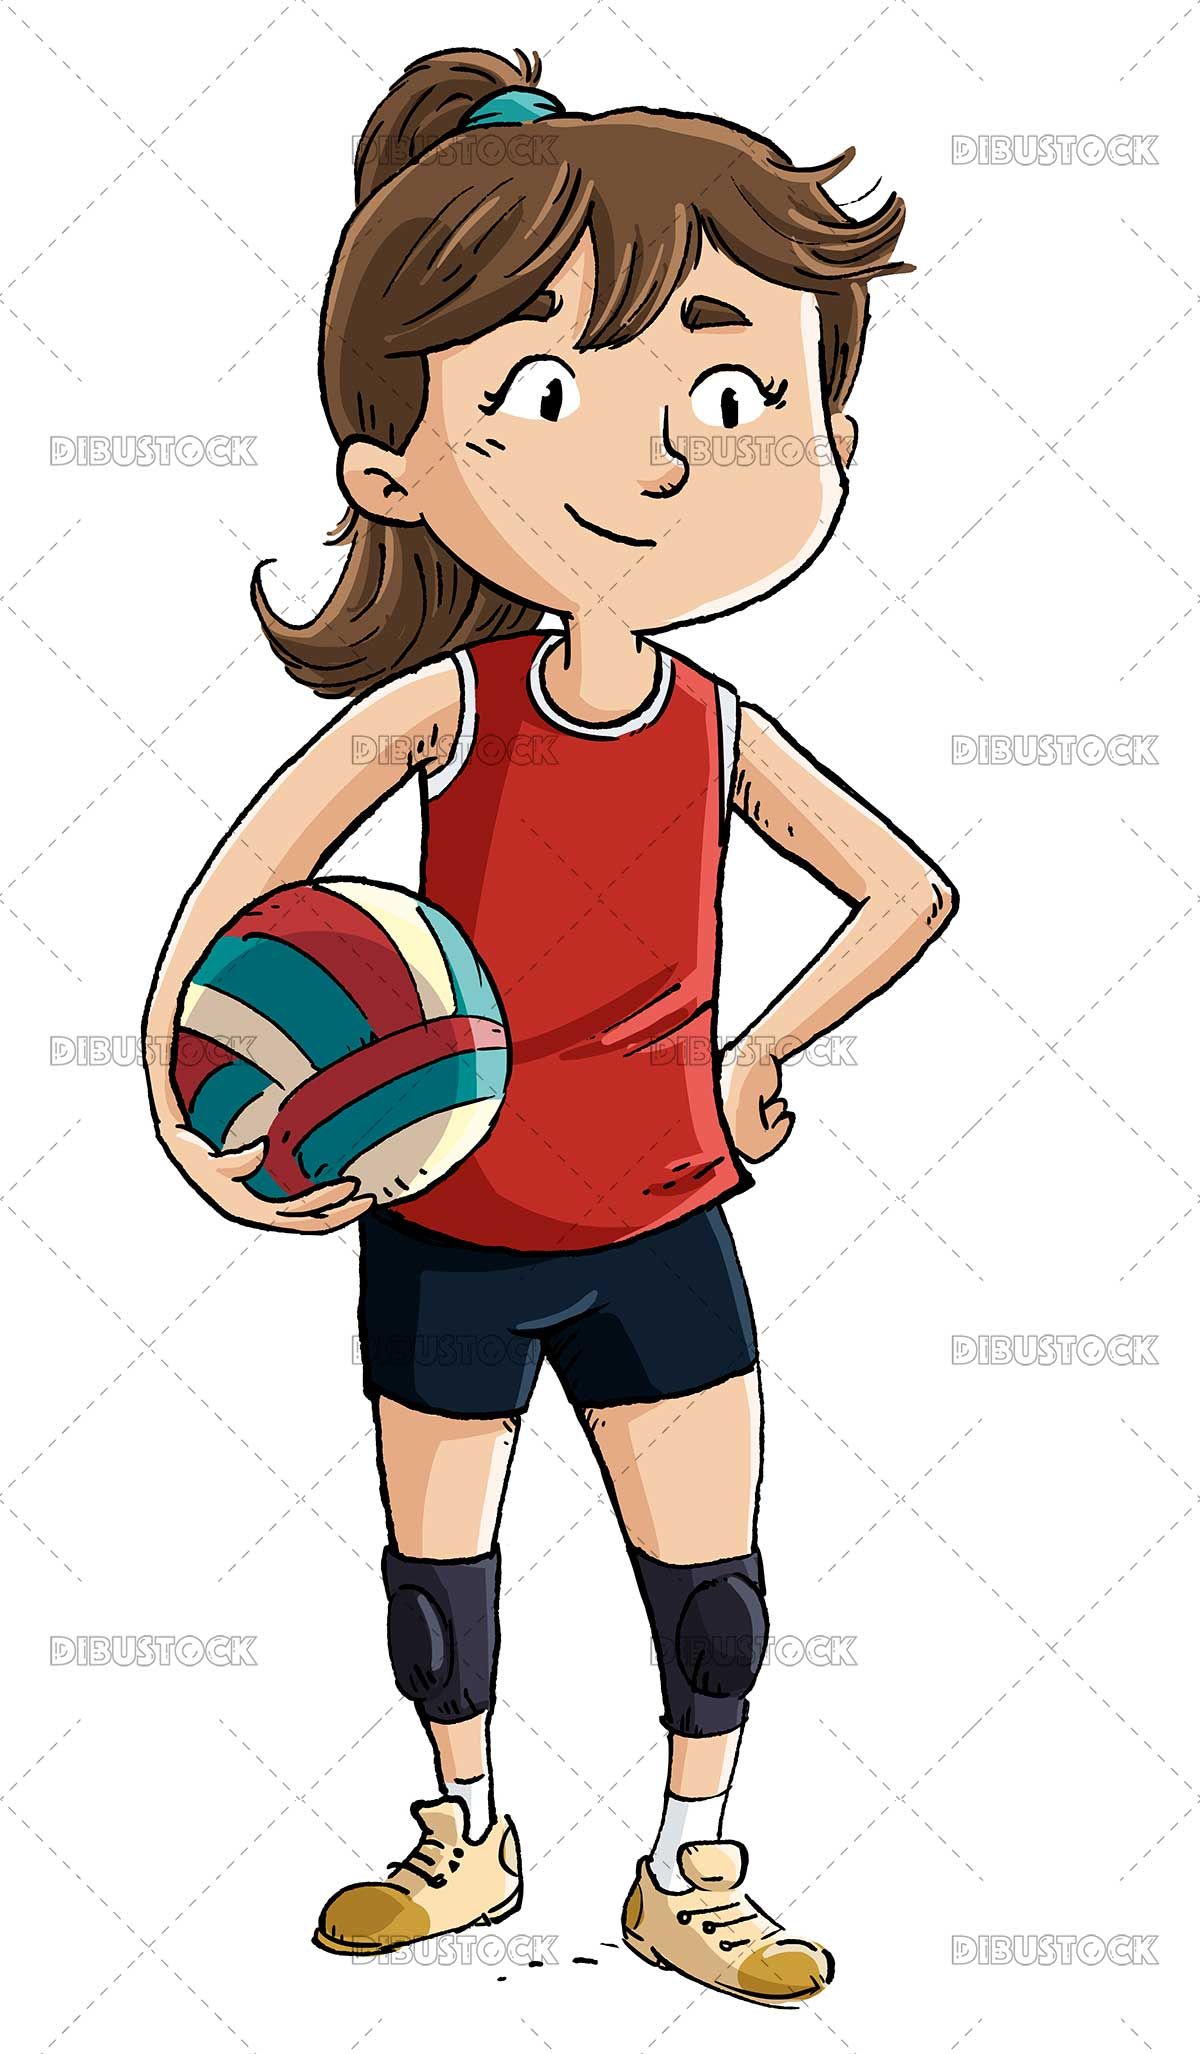 Illustration of girl volleyball player posing with ball